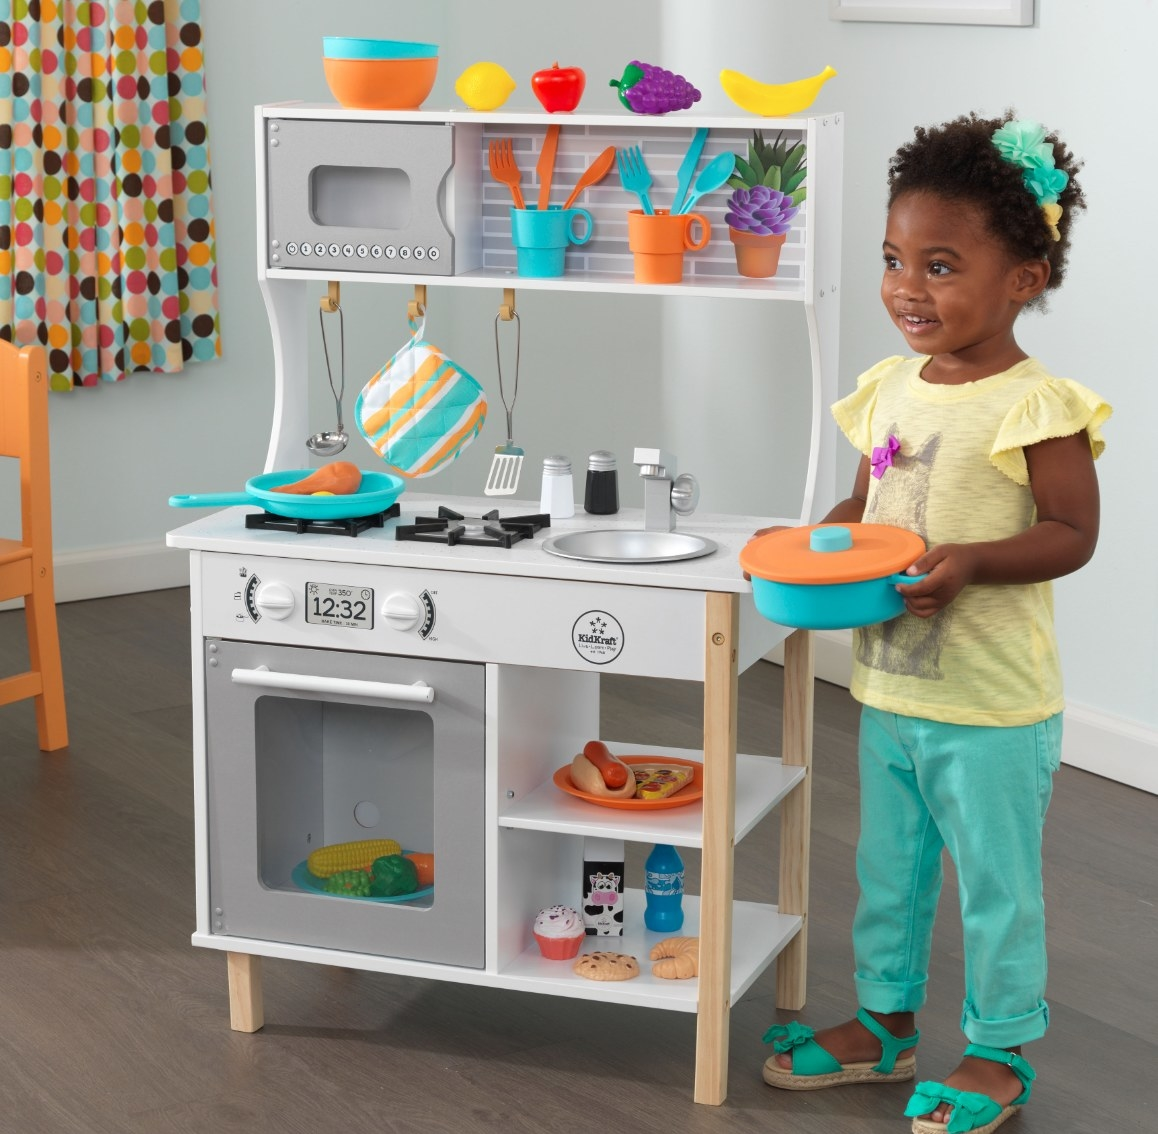 The 38 piece kitchen accessory playset with a white stove and counter